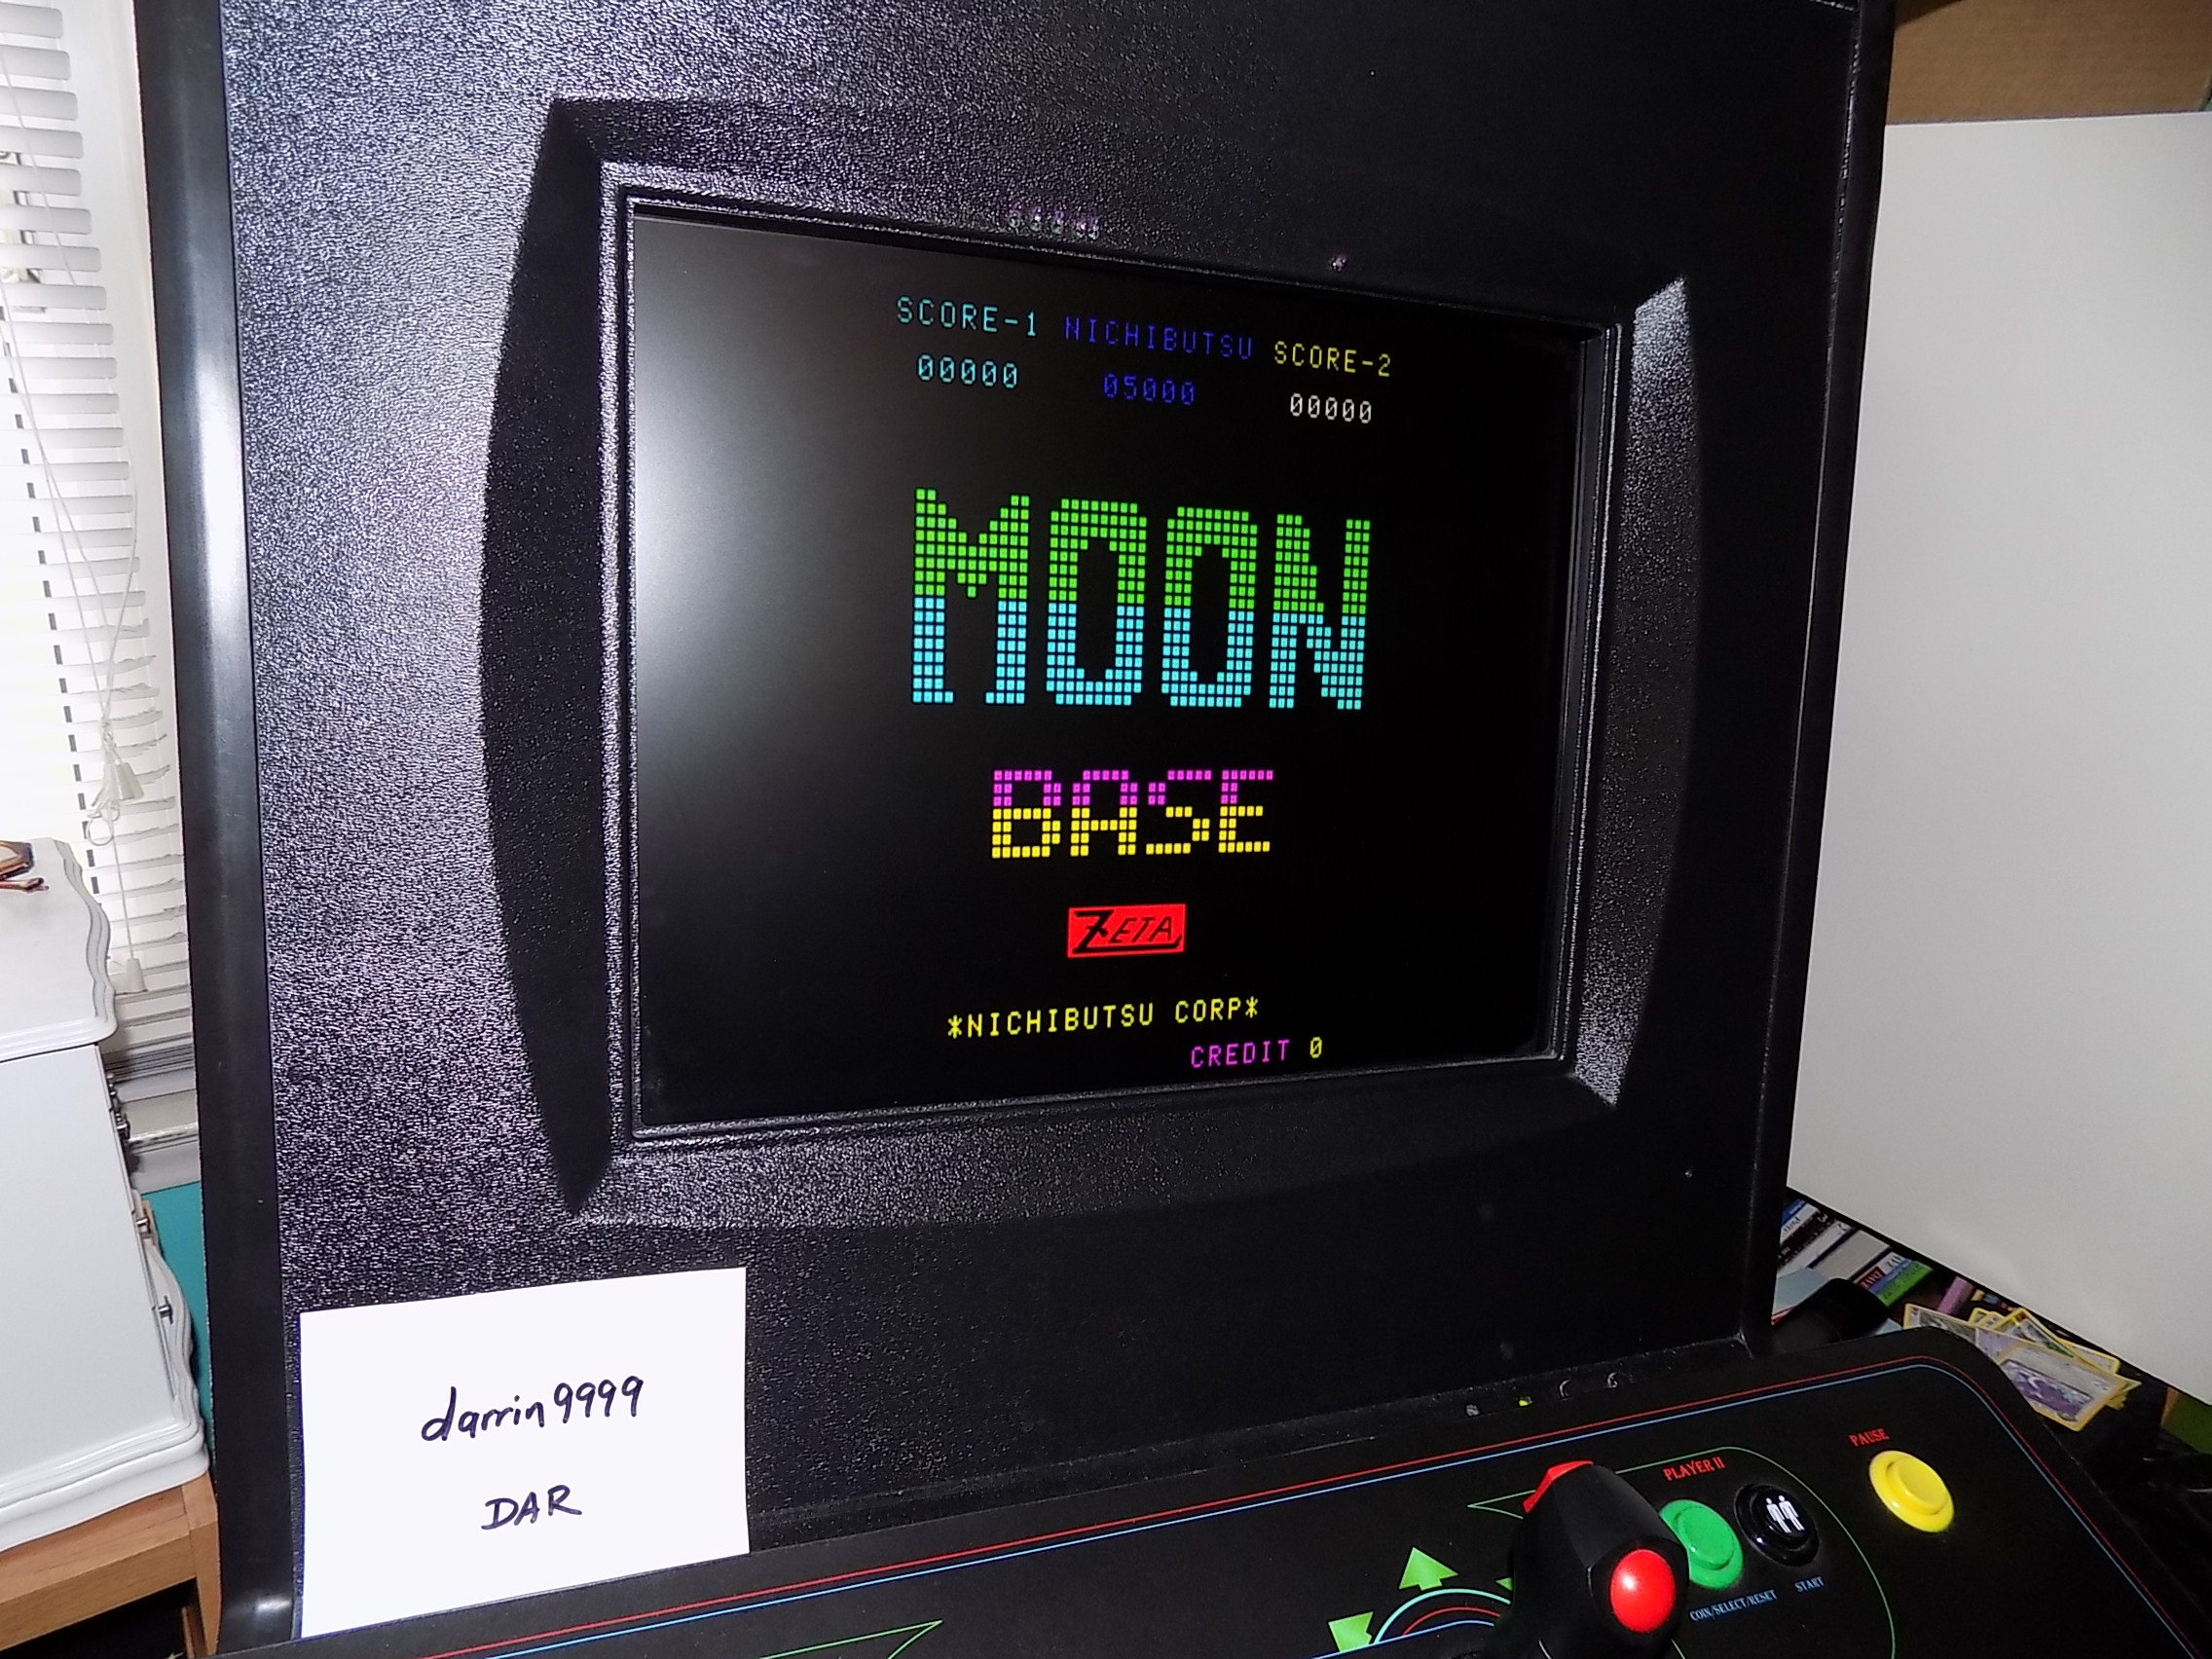 darrin9999: Moon Base [moonbase] (Arcade Emulated / M.A.M.E.) 1,790 points on 2018-05-10 13:31:21